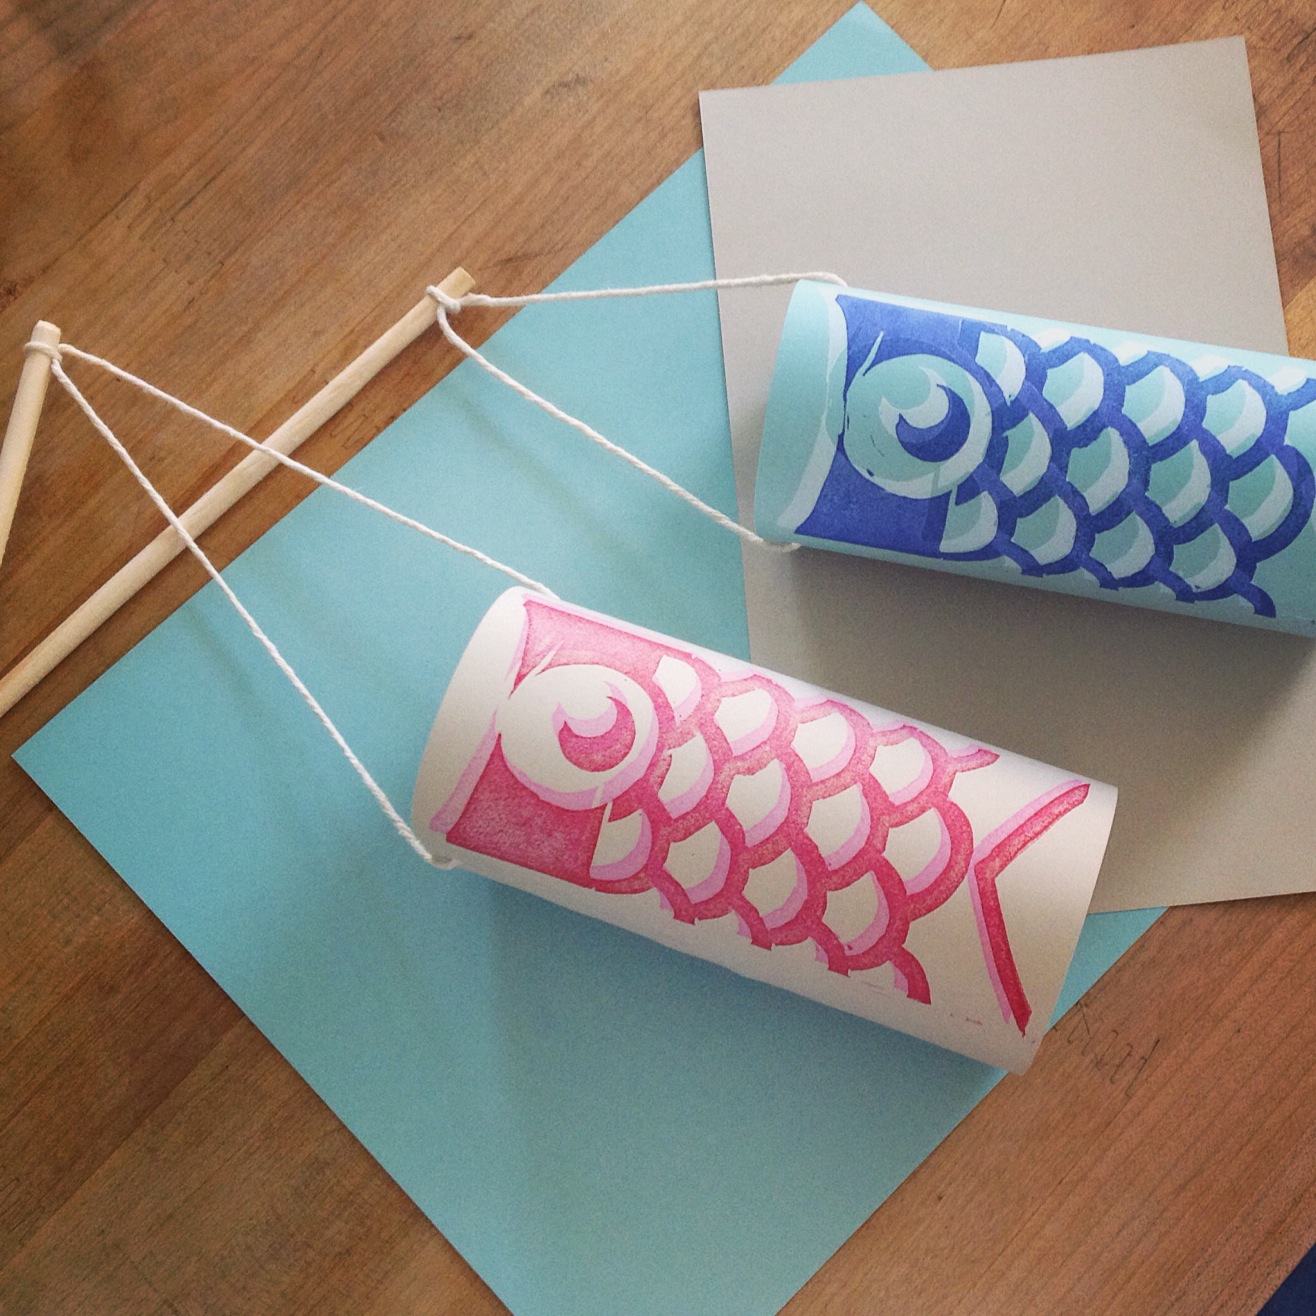 Learn the Basics of Linocut Stamping: Make a Simple Wind Sock